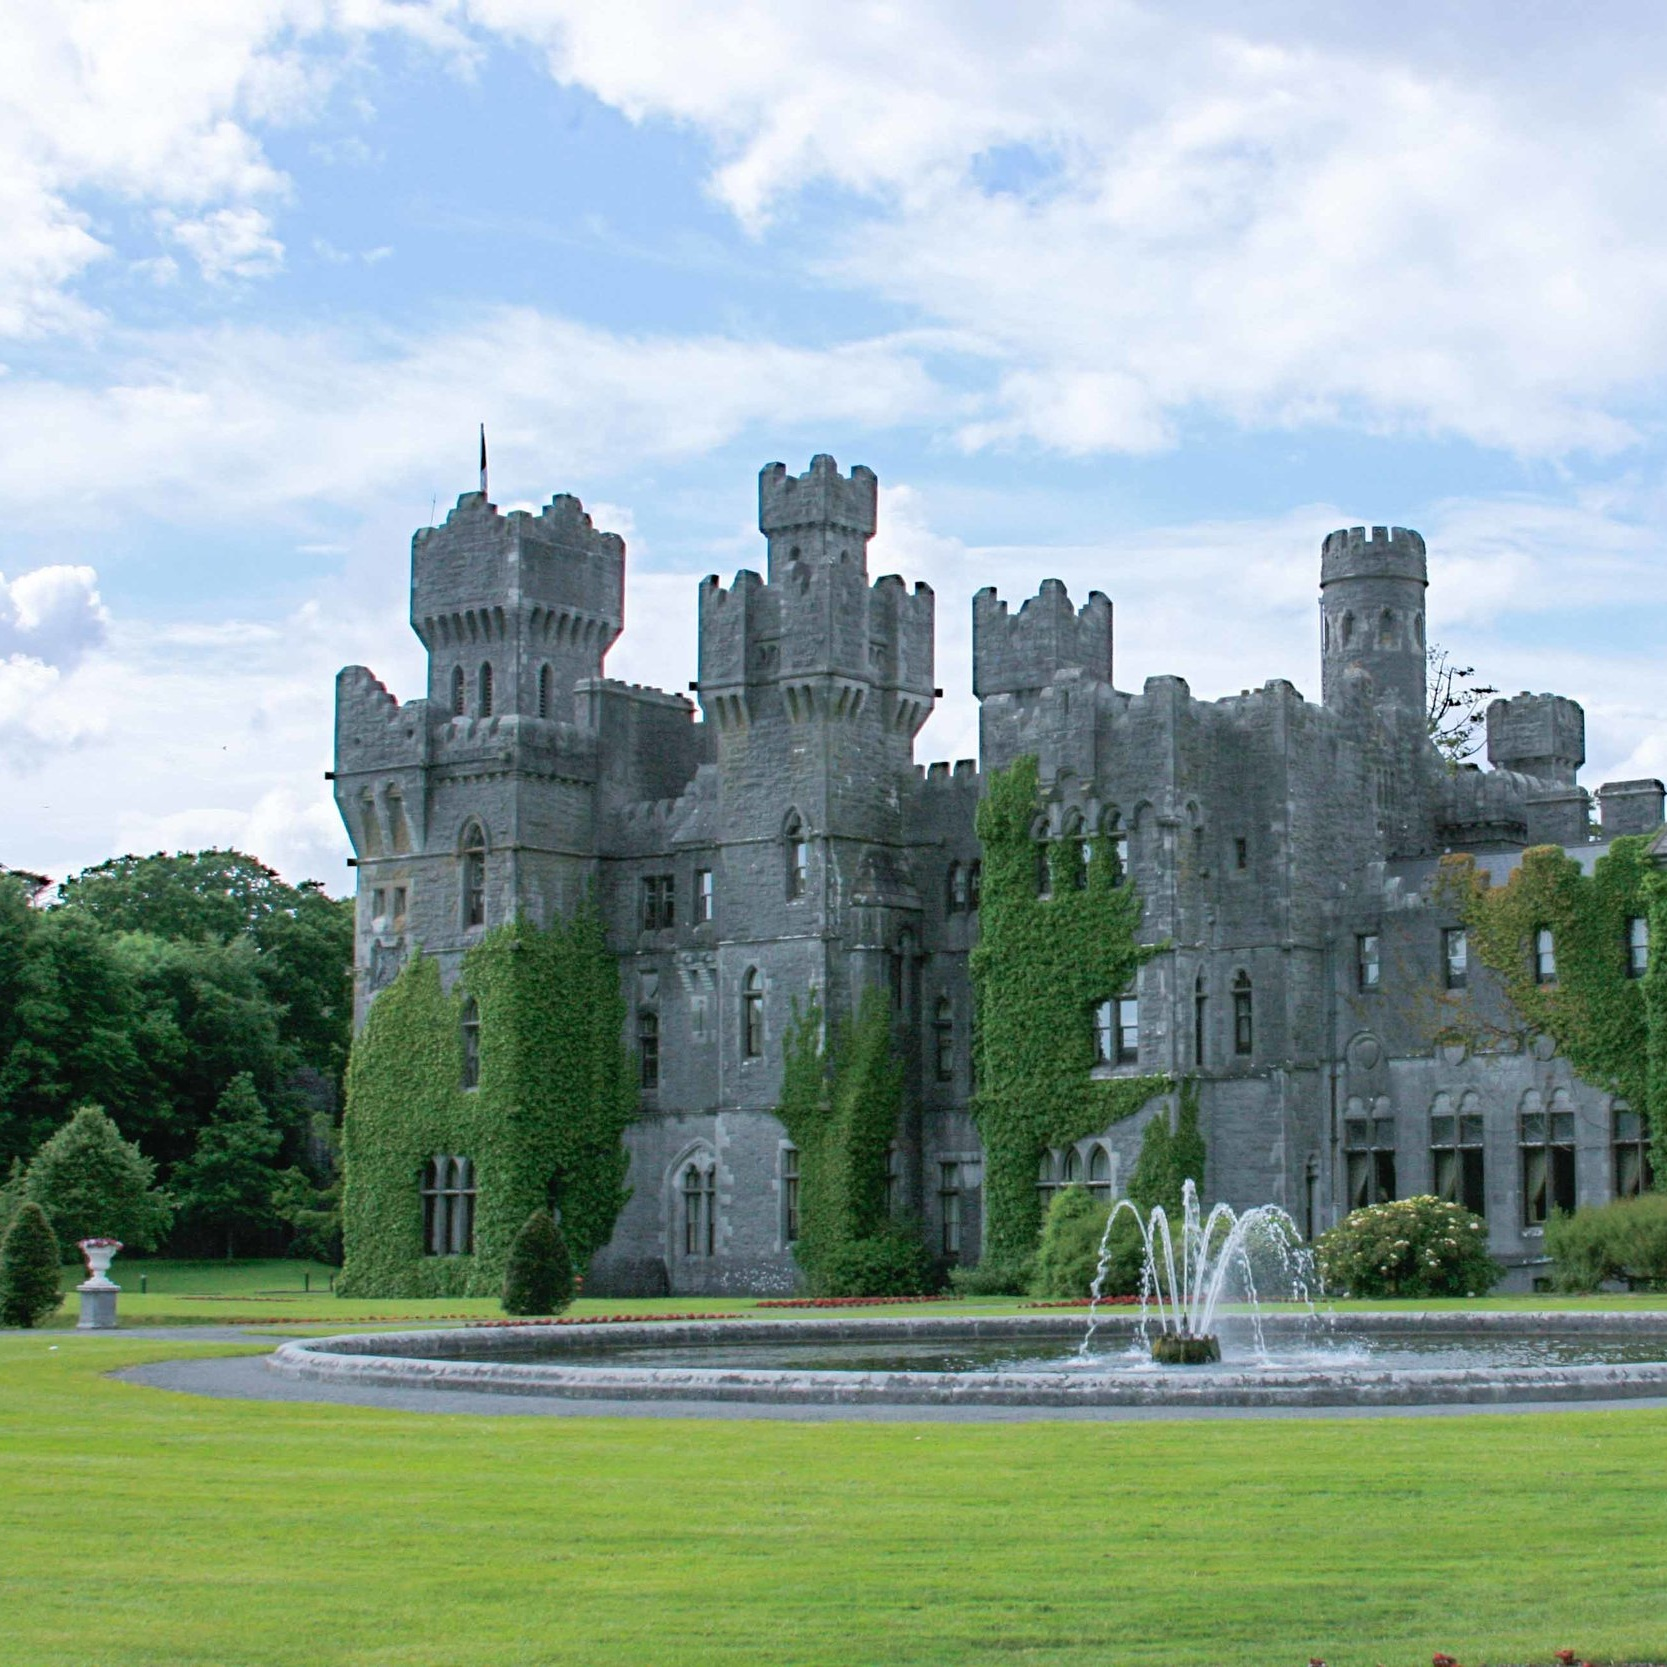 Where to Stay in Ireland - Castles, hotels, and B & B — recommendations for all kinds of accommodations across Ireland from big cities into the countryside.